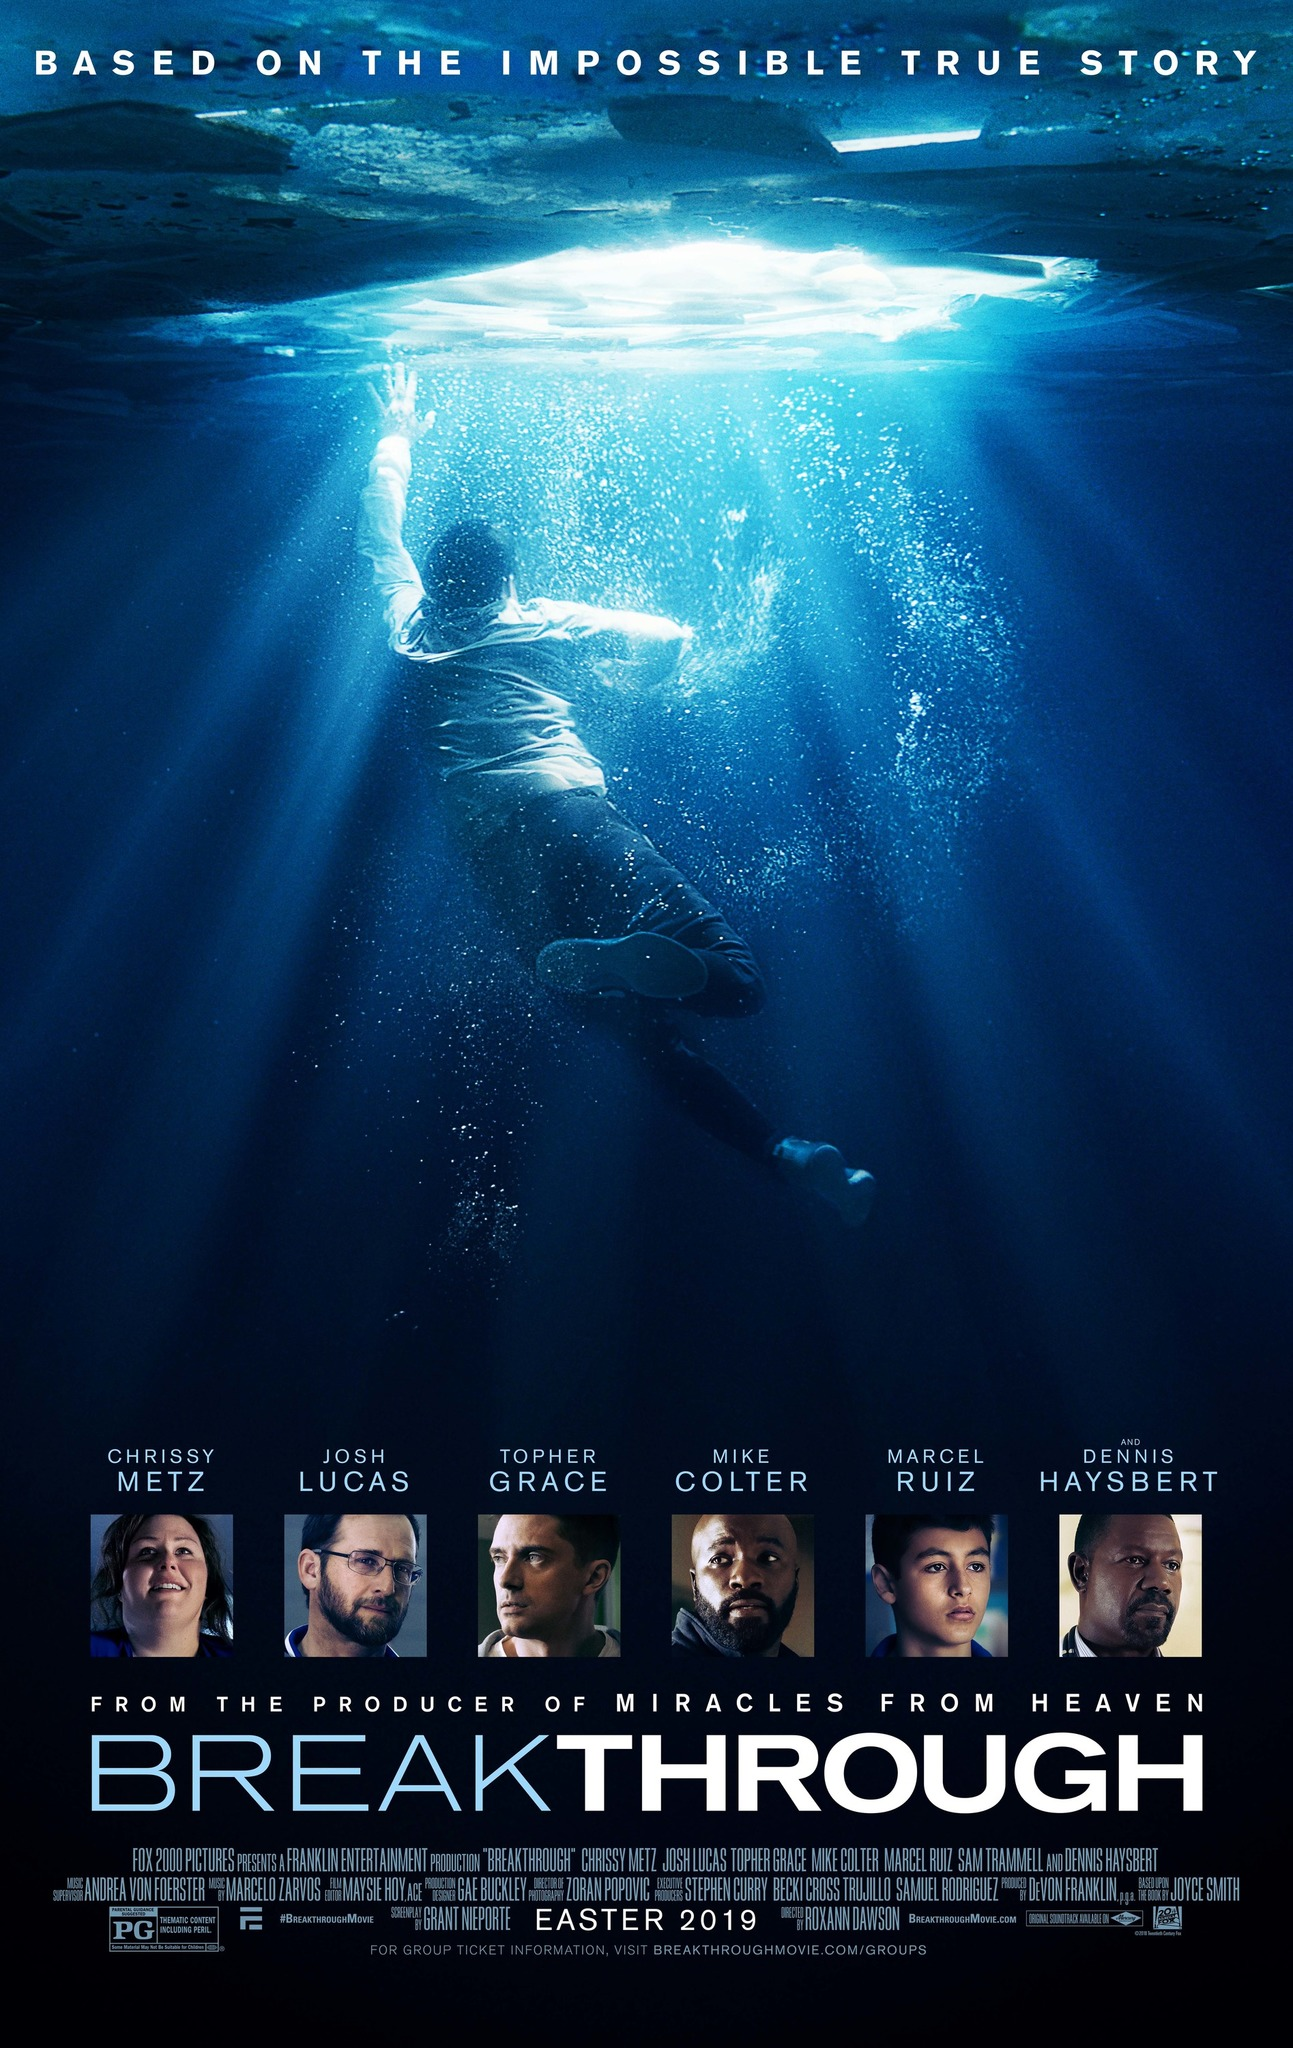 Breakthrough (2019) - Directed By: Roxann DawsonStarring: Topher Grace, Josh Lucas, Chrissy Metz, Mike Colter, Dennis Haysbert, Marcel RuizRated: PGRun Time: 1h 56mTMM Score: 1 StarStrengths: NoneWeakness: Almost Everything